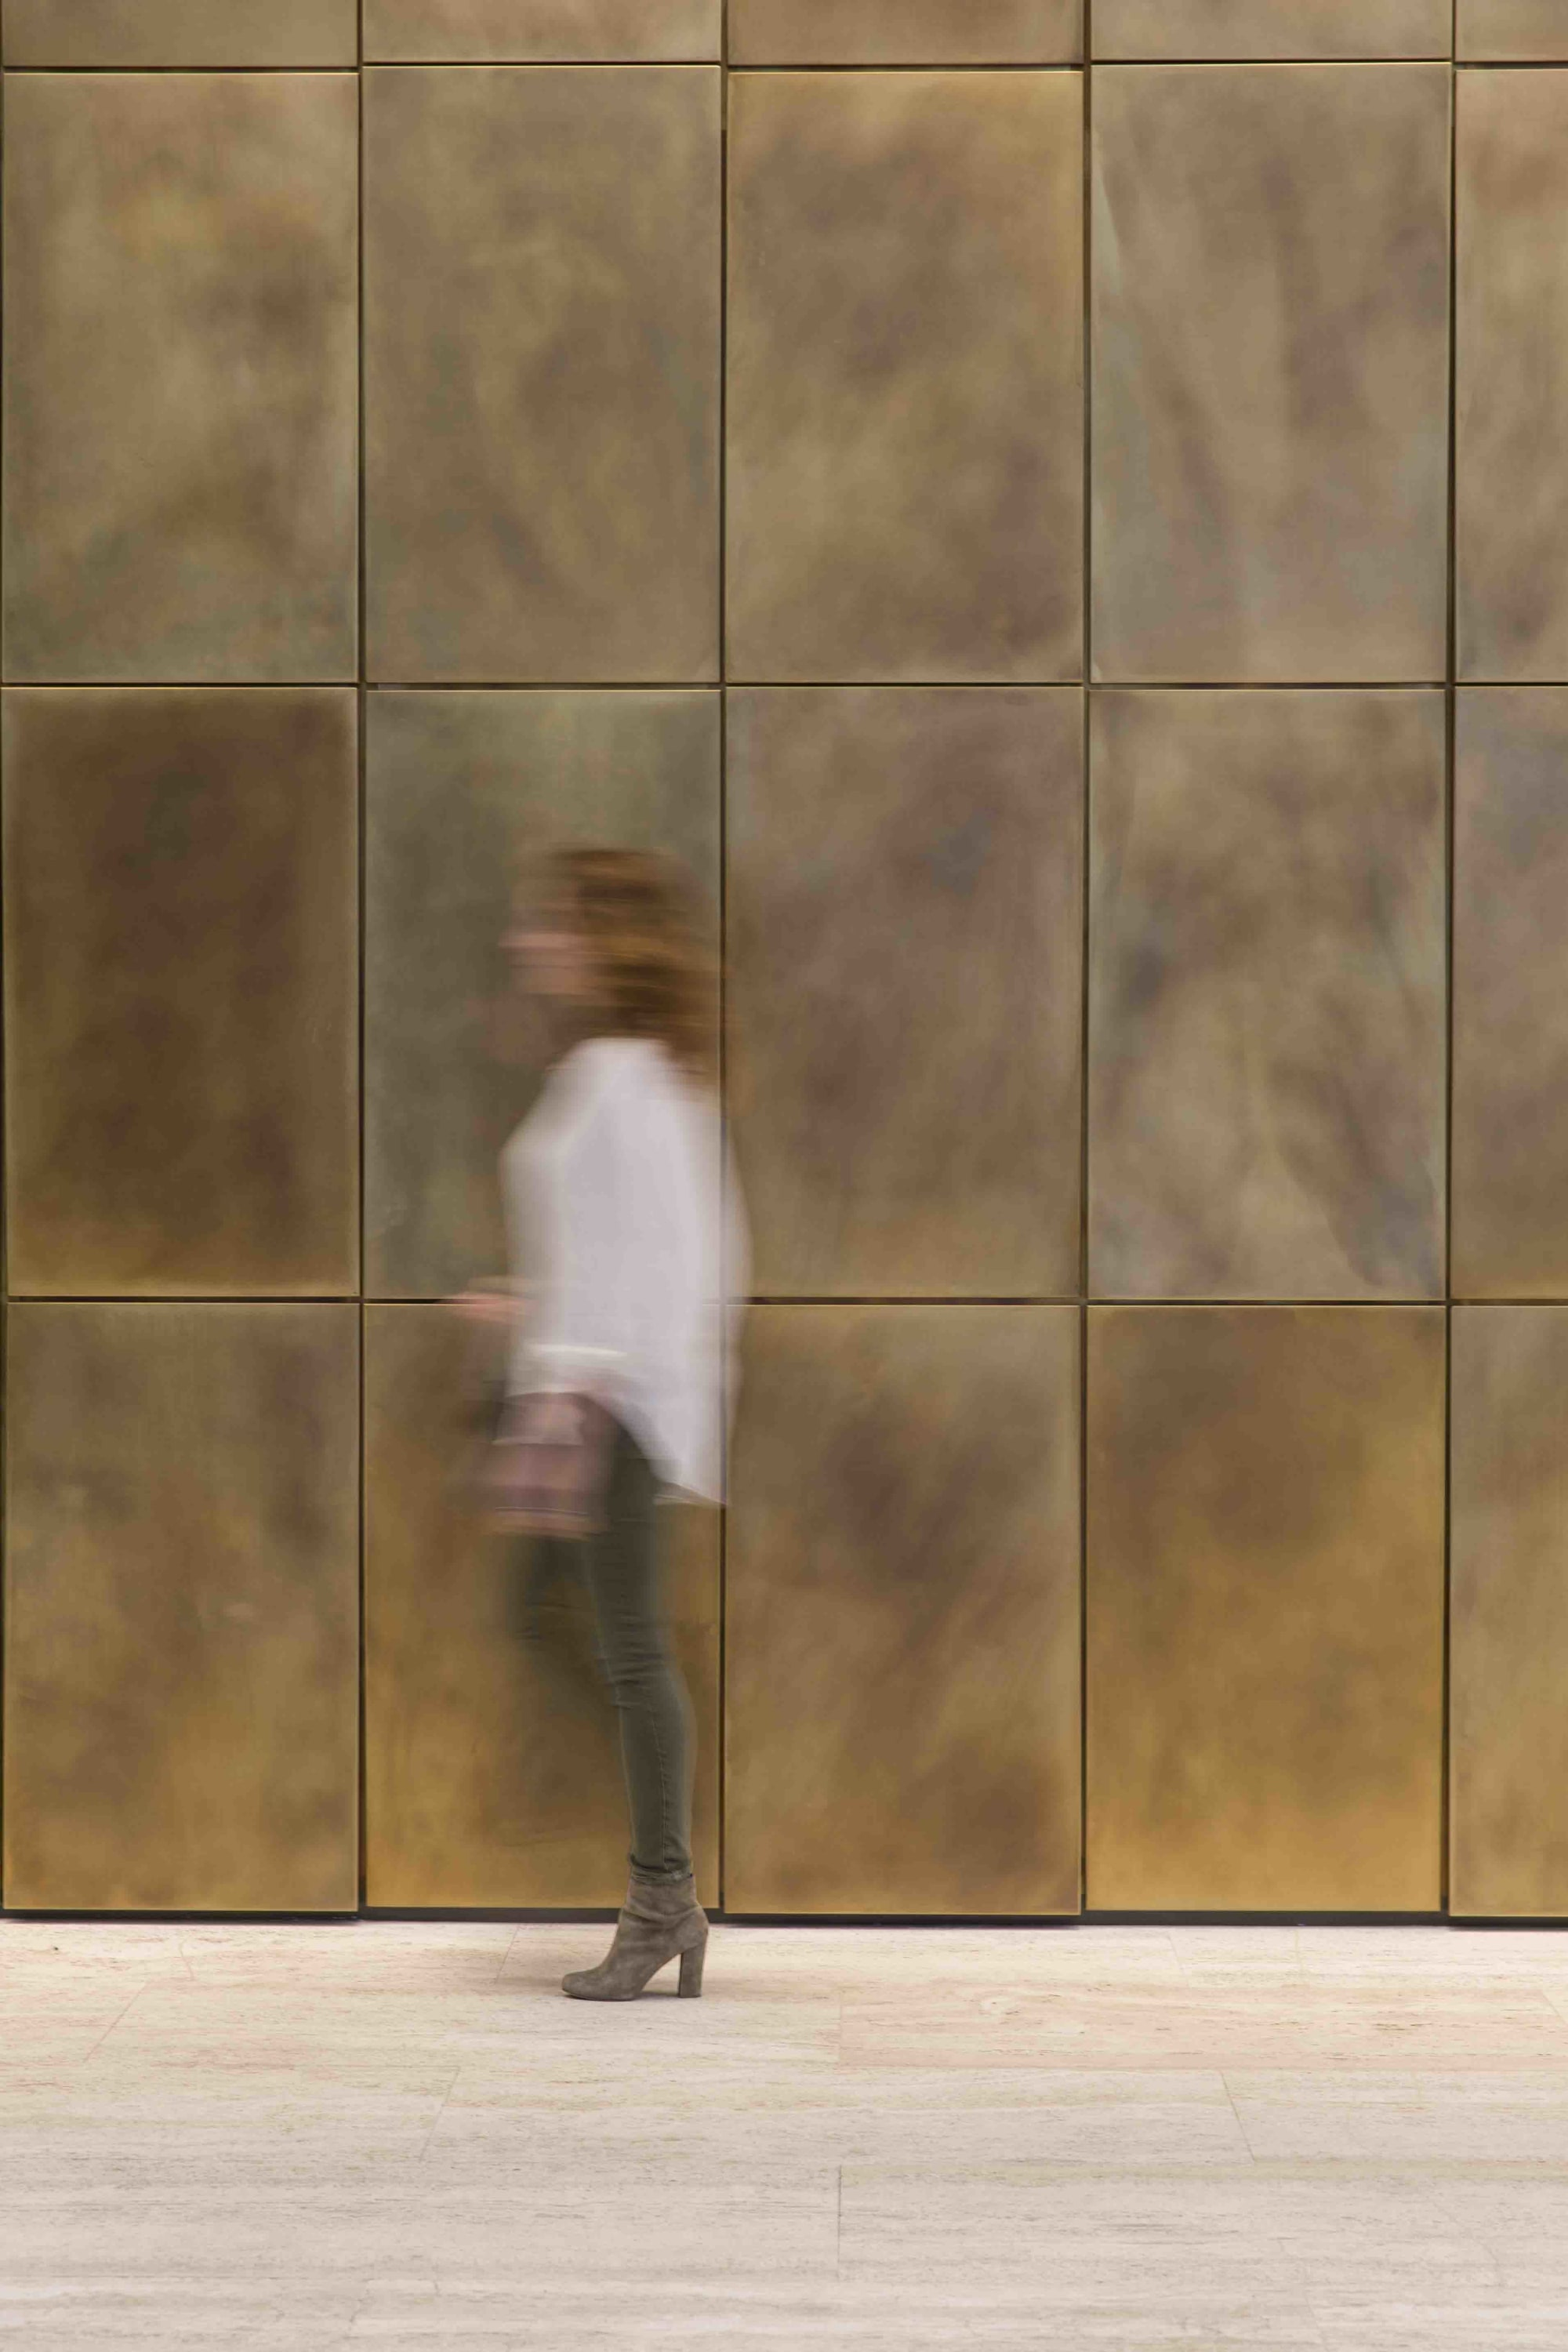 Wall Treatments by Amuneal seen at Fisher Brothers Management, New York - 605 3rd Avenue Feature Wall